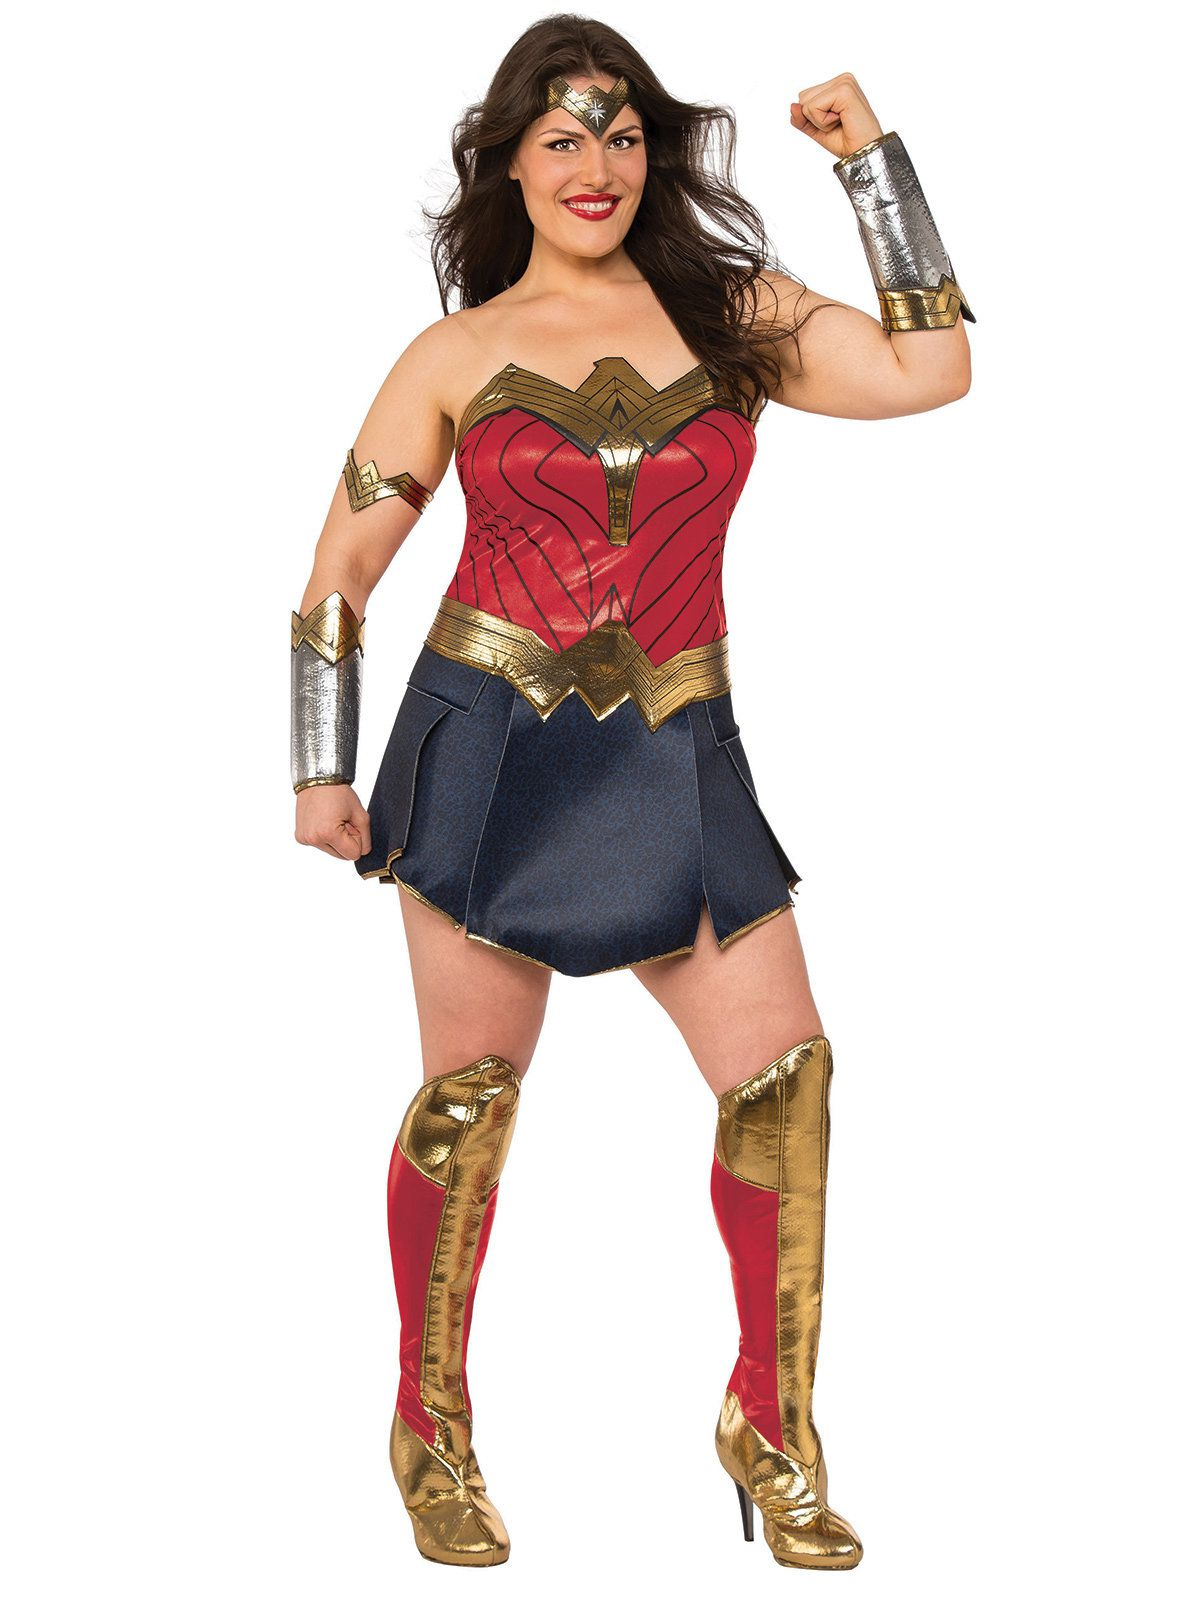 Cheap wonder woman halloween costume-6455